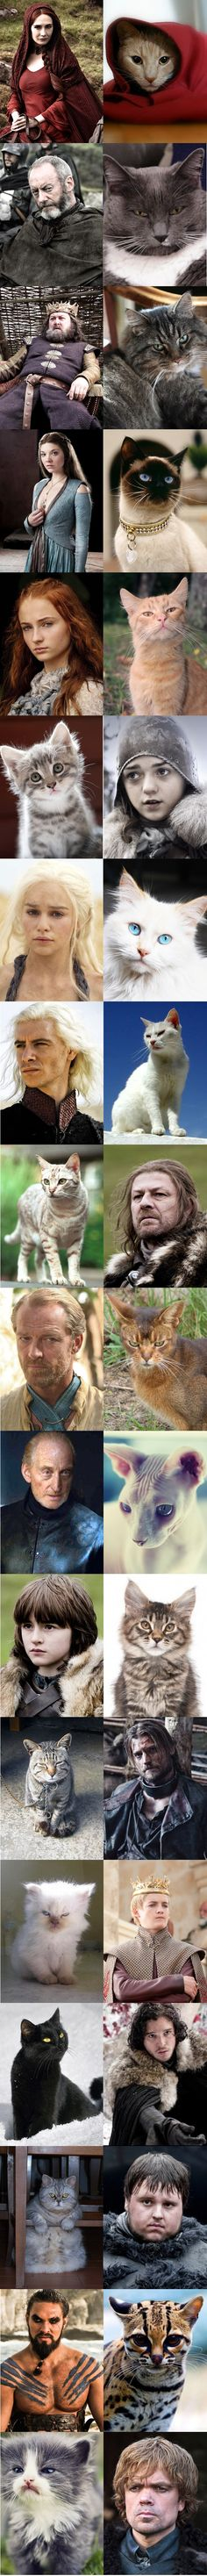 Game of Thrones... Now with Cats! Our fandom needs the show to come back on soon... XD